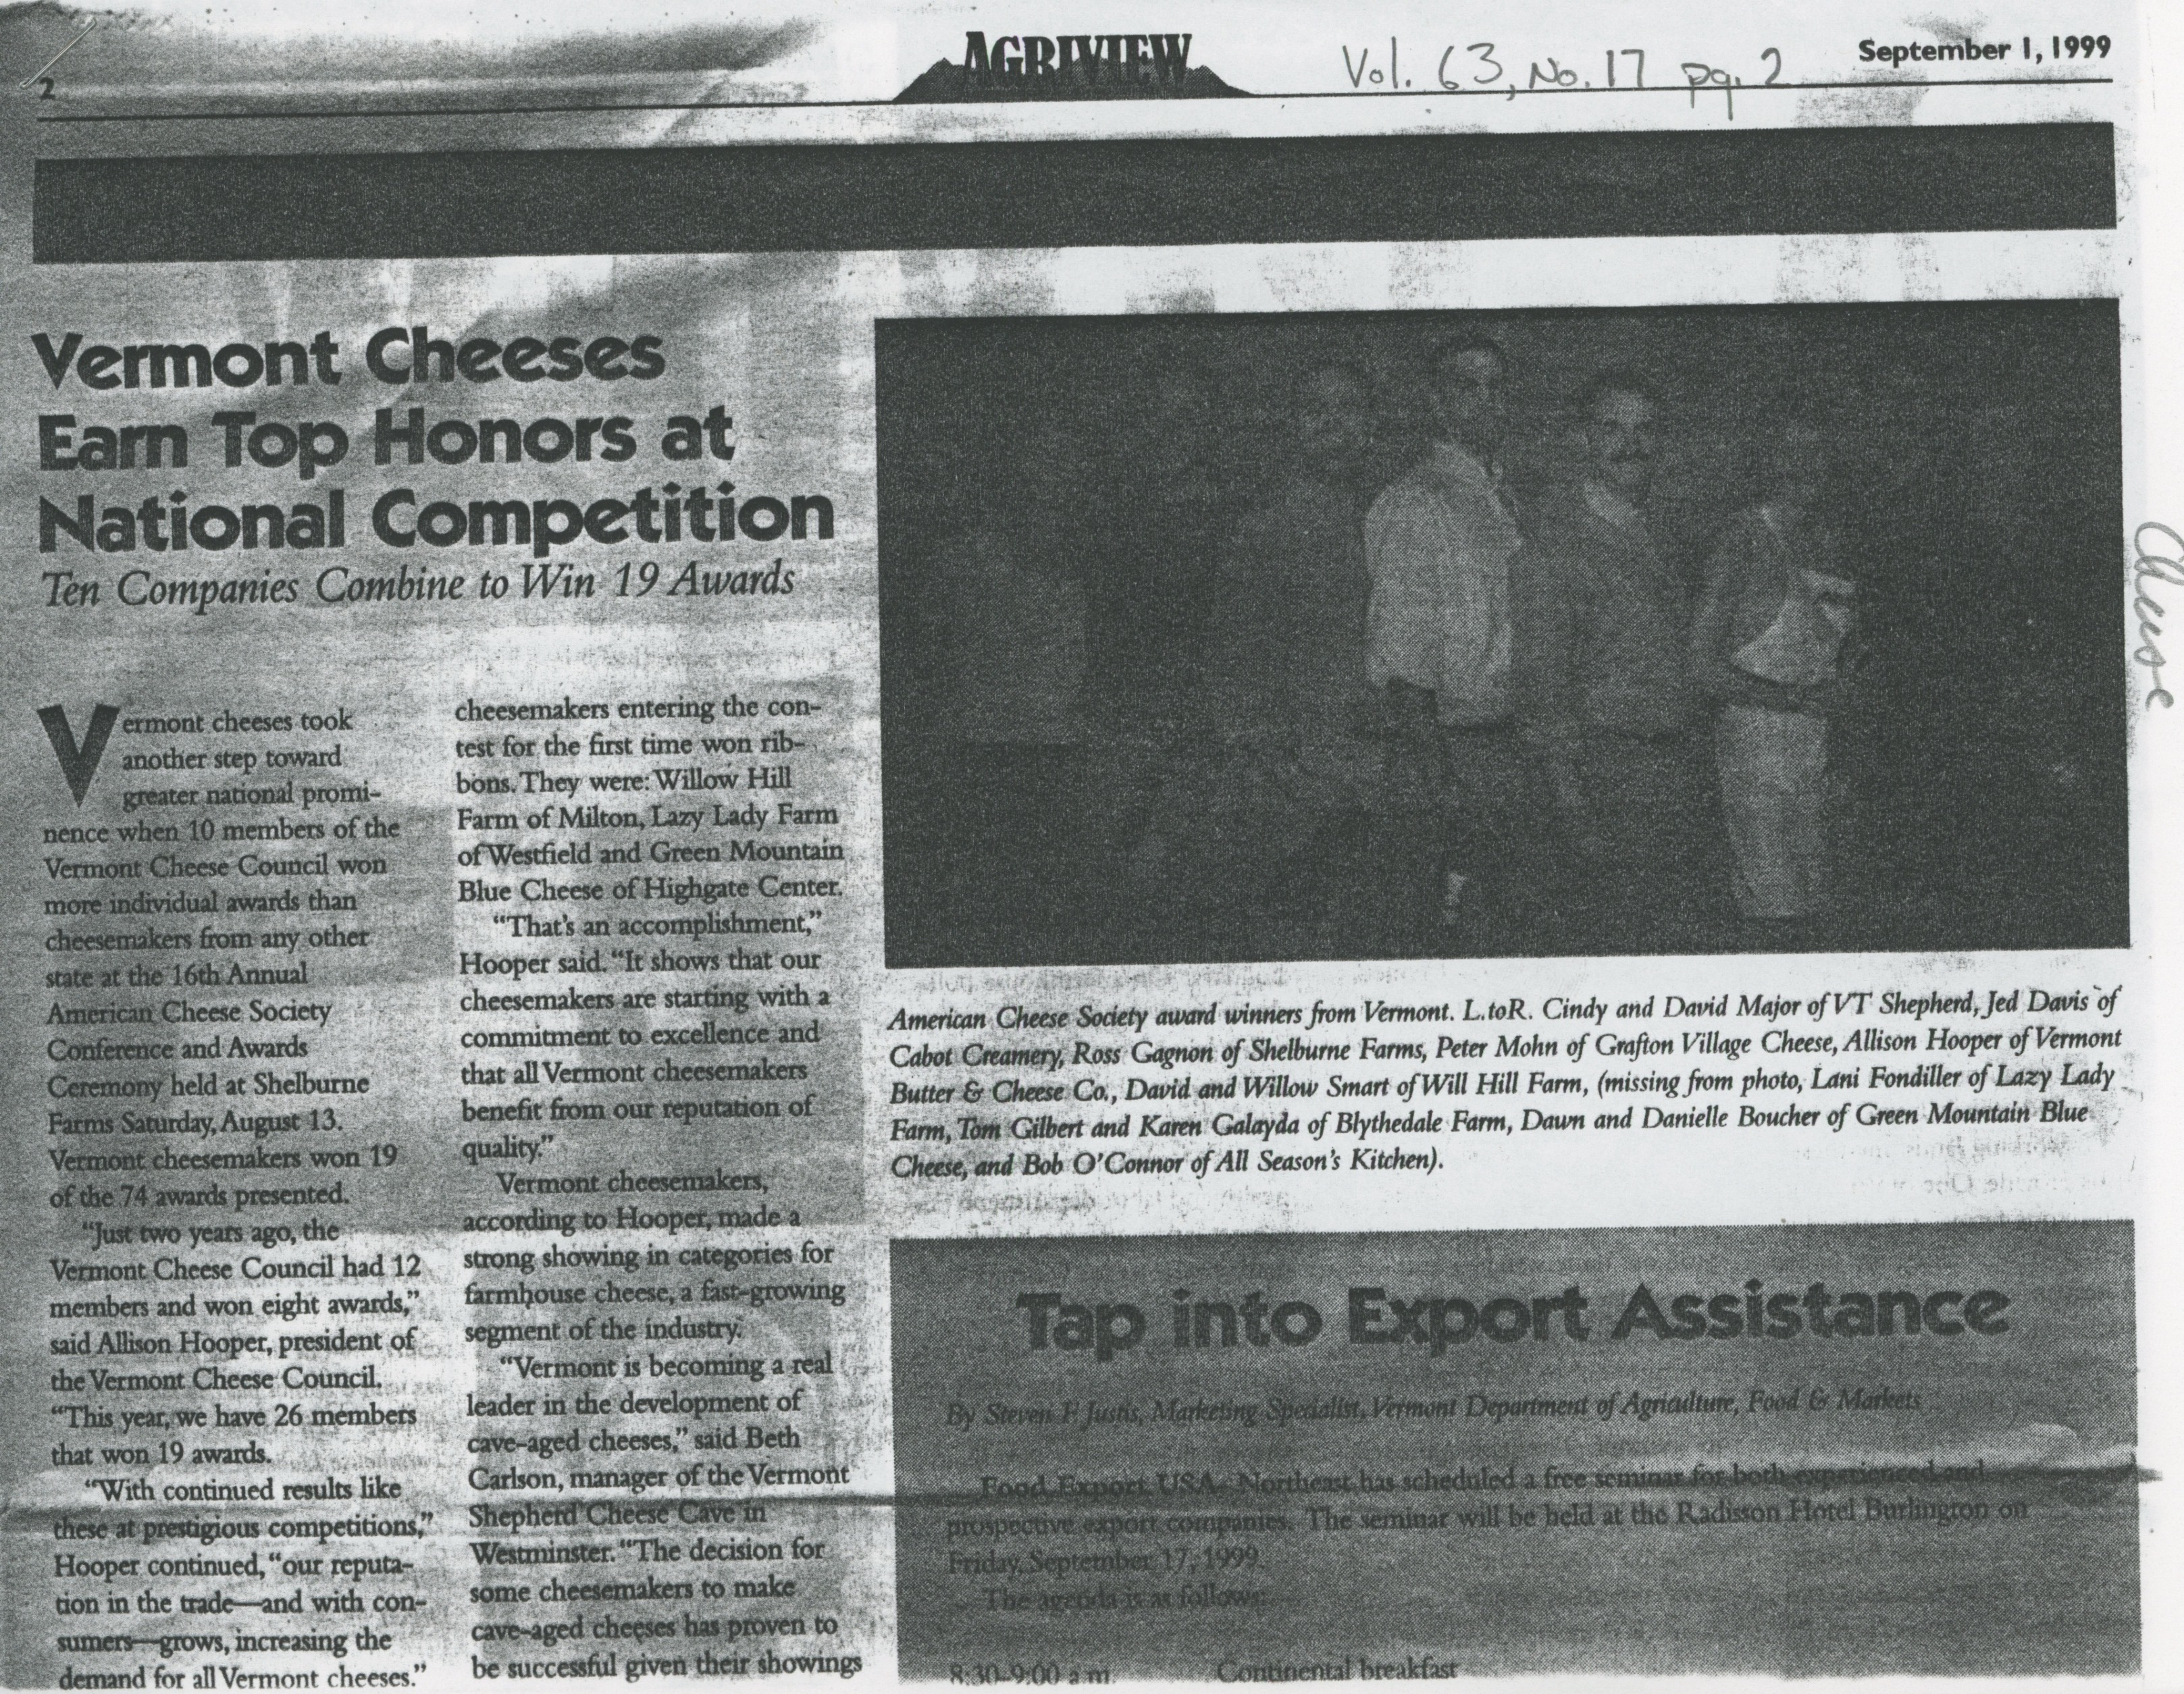 Vermont Cheese Earn Top Honors at National Competition, 1999